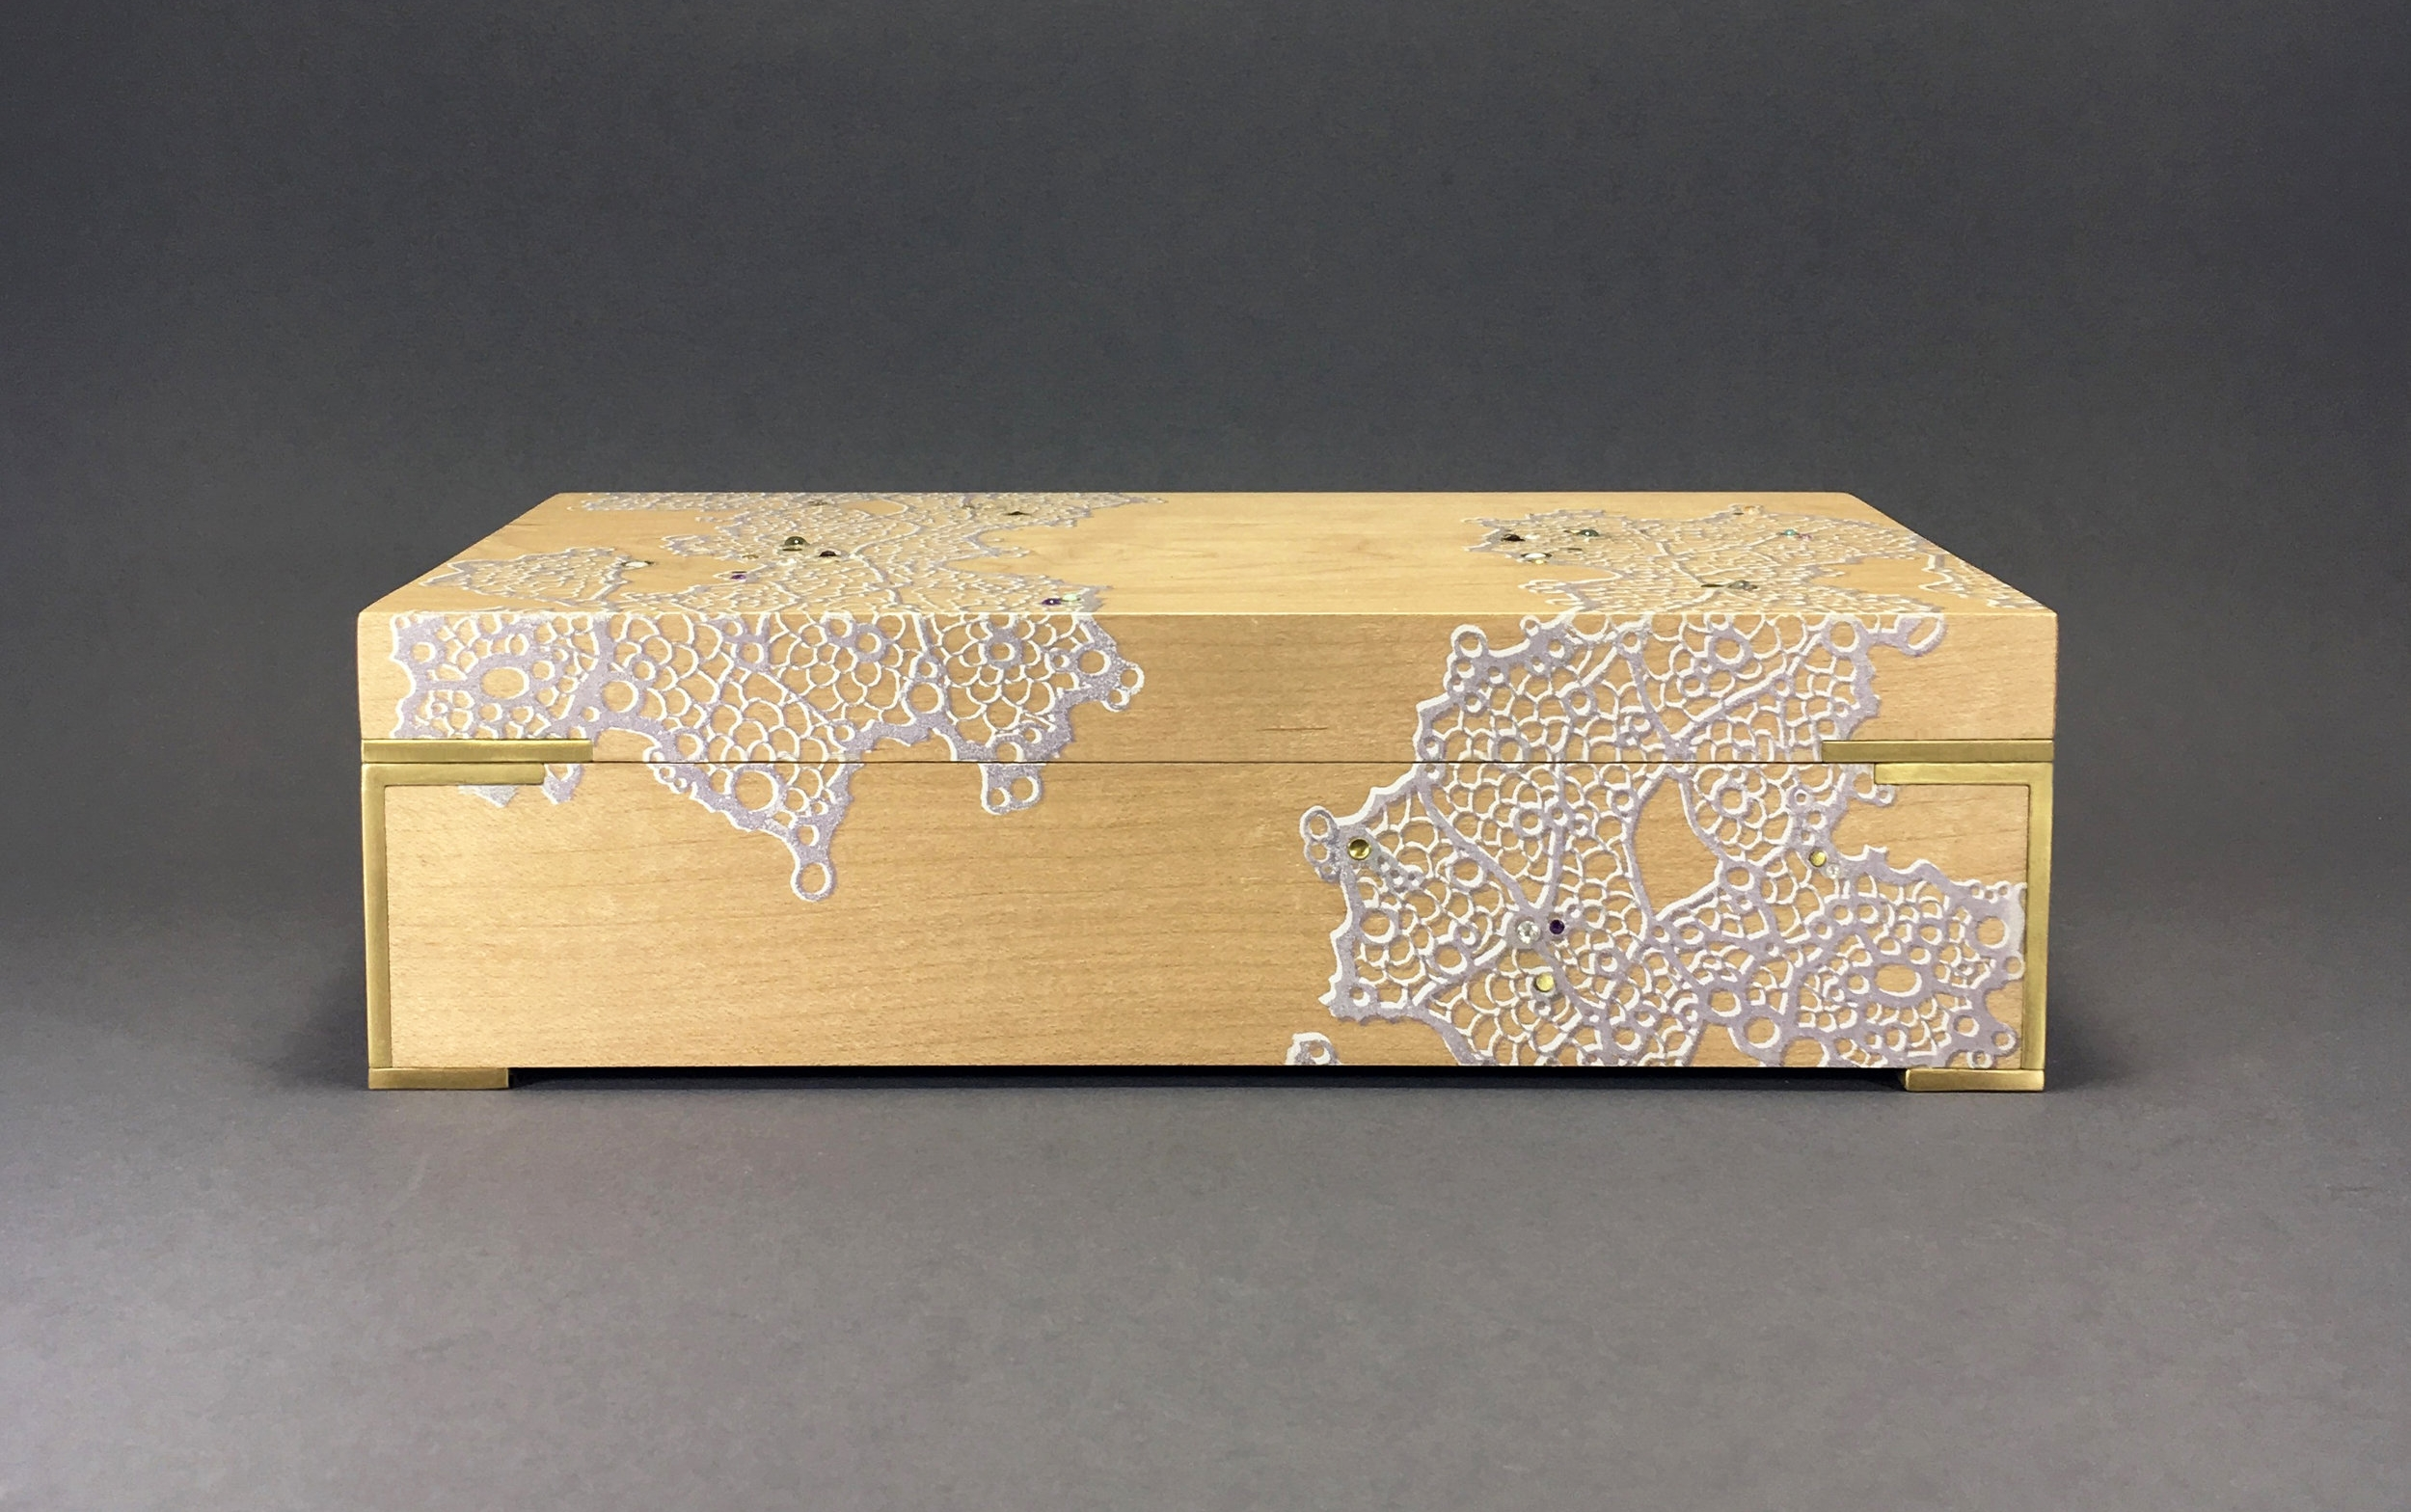 """lace  box, maple, 9"""" x 5"""" x 2.75"""", brass, amethyst, white topaz, opal, moonstone, and aquamarine gemstones, lined with navy suede, $450"""